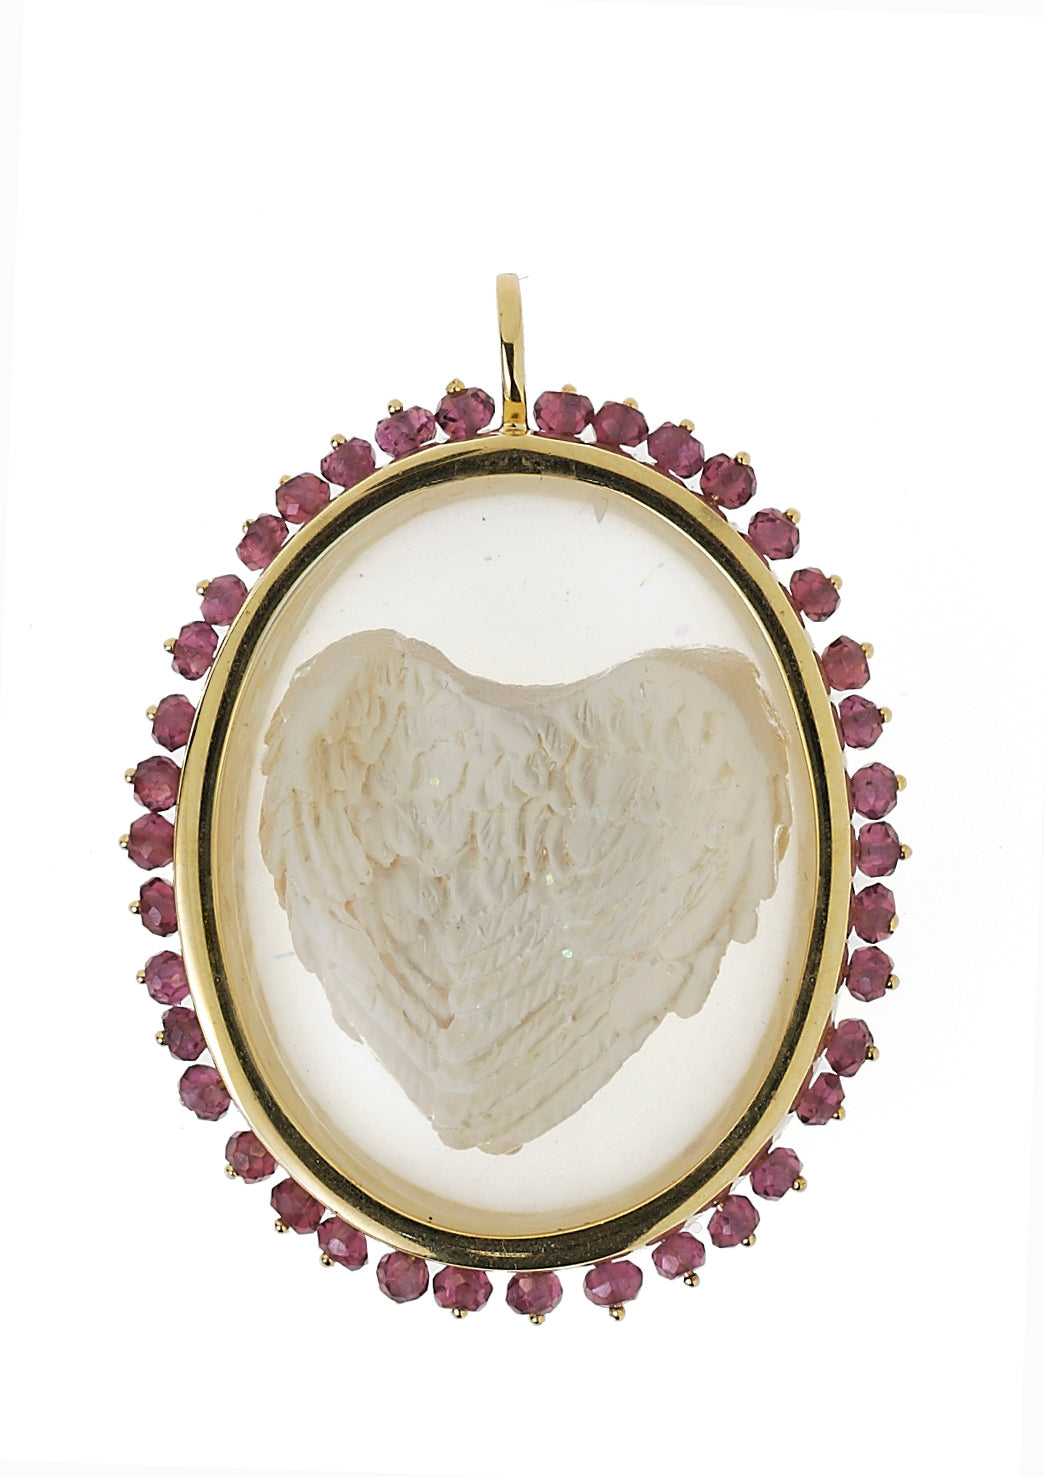 Angel Heart with stones